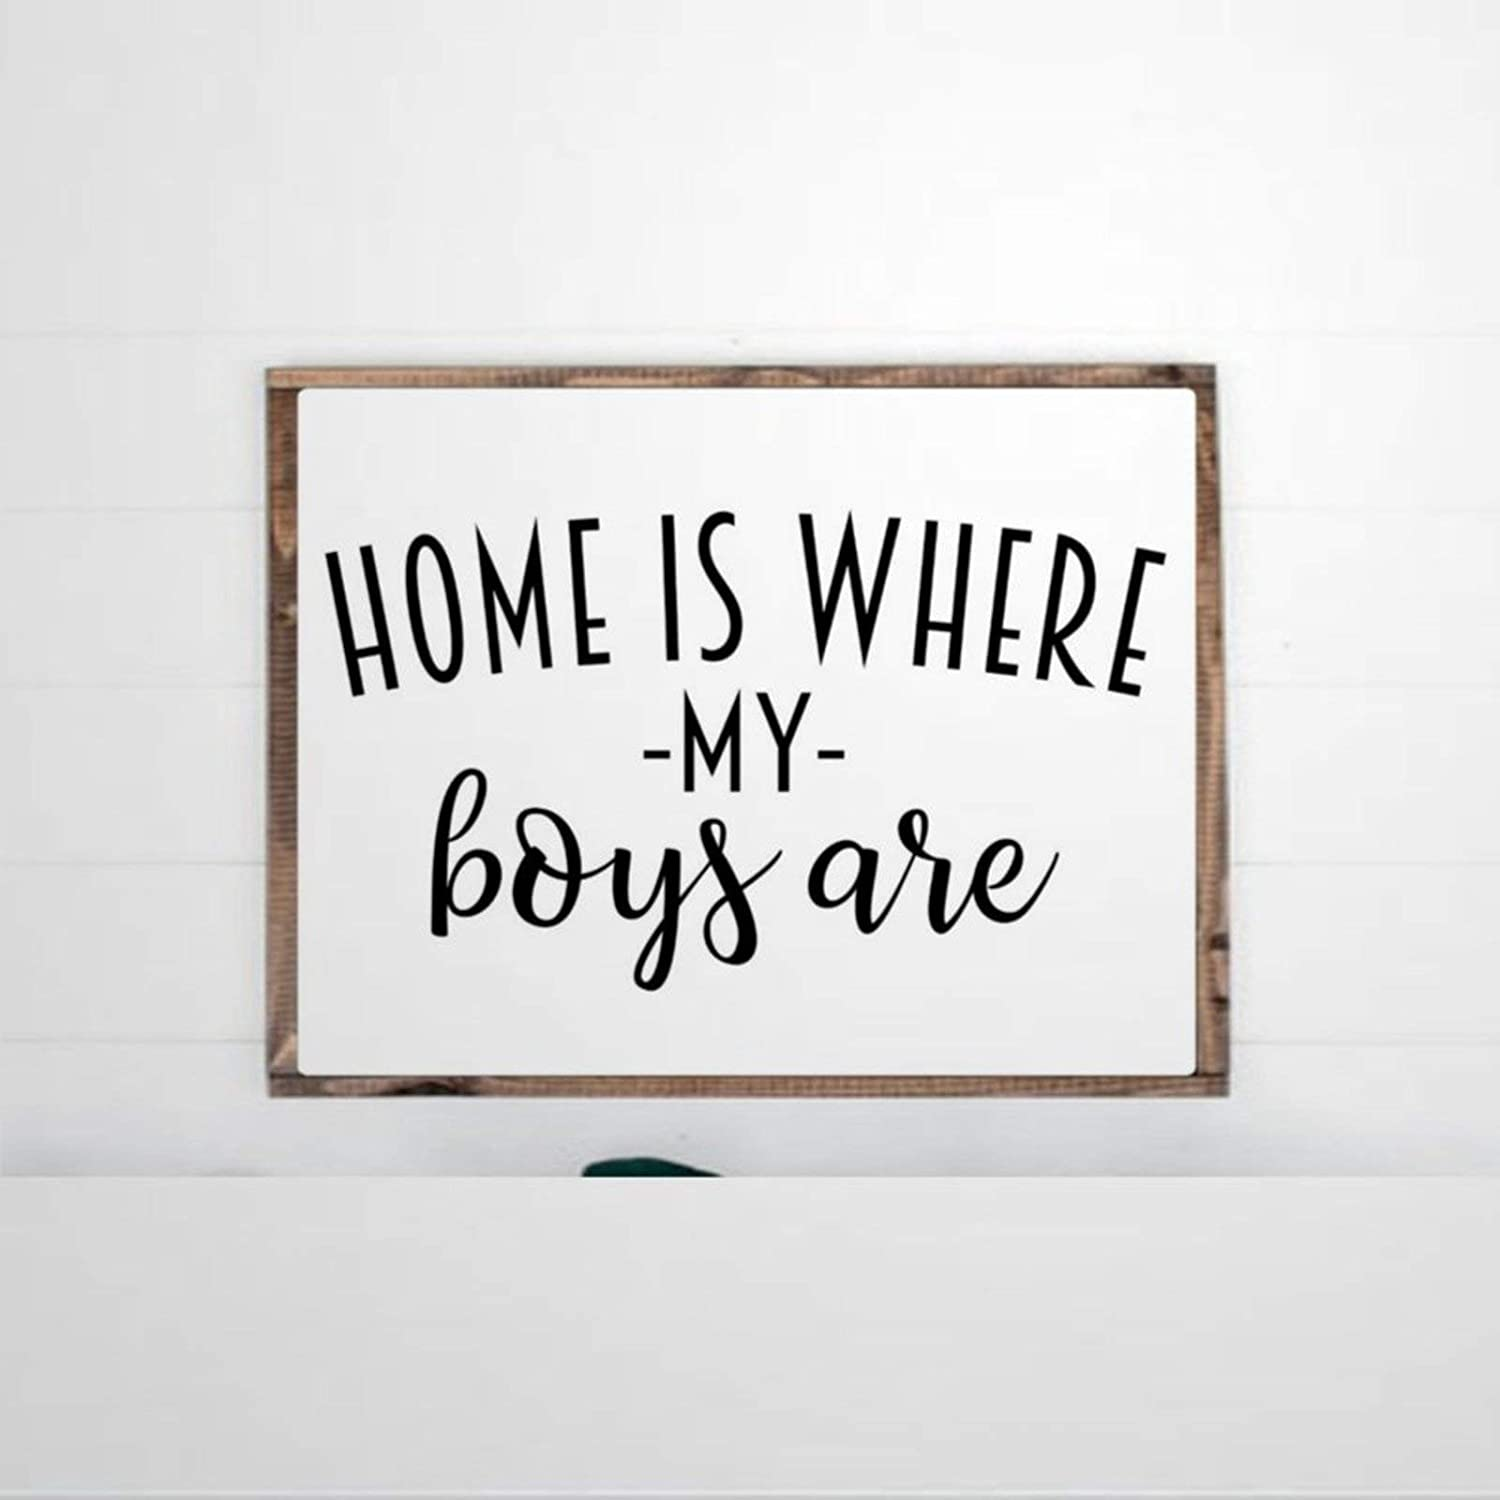 DONL9BAUER Framed Wooden Sign Home is Where My Boys are Wall Hanging Farmhouse Home Decor Wall Art for Living Room 8X12